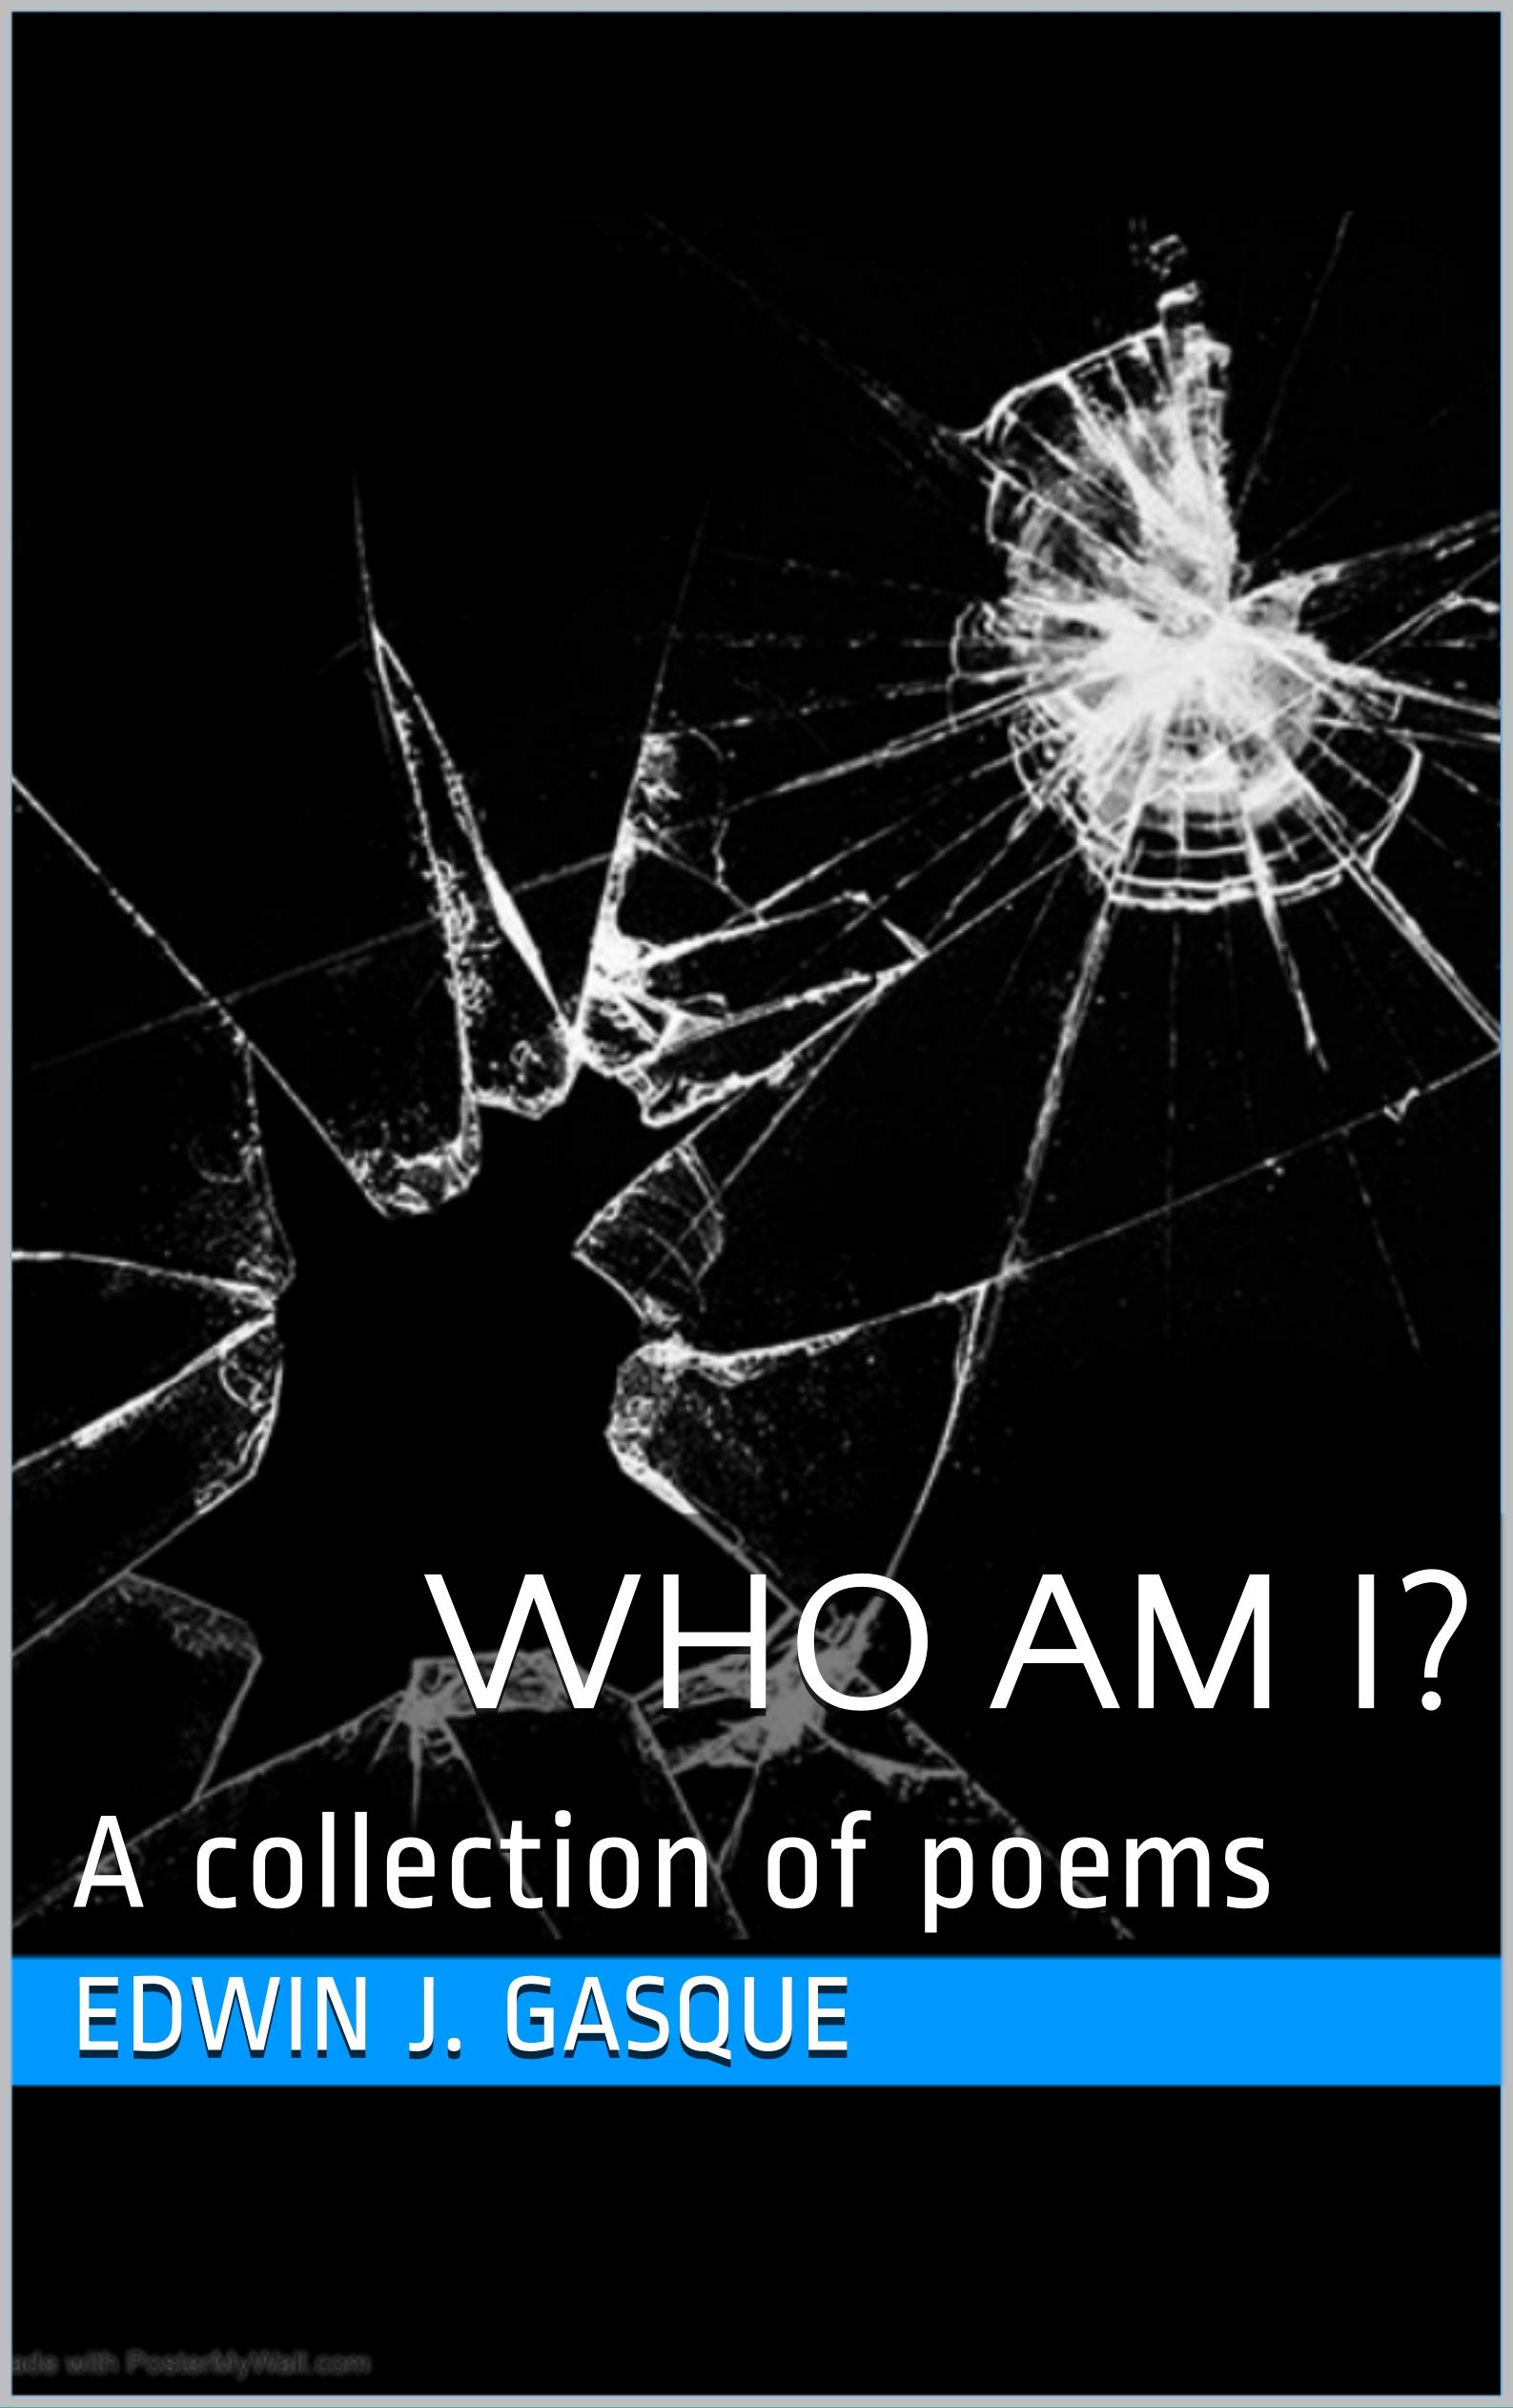 Who am I?: A collection of poems